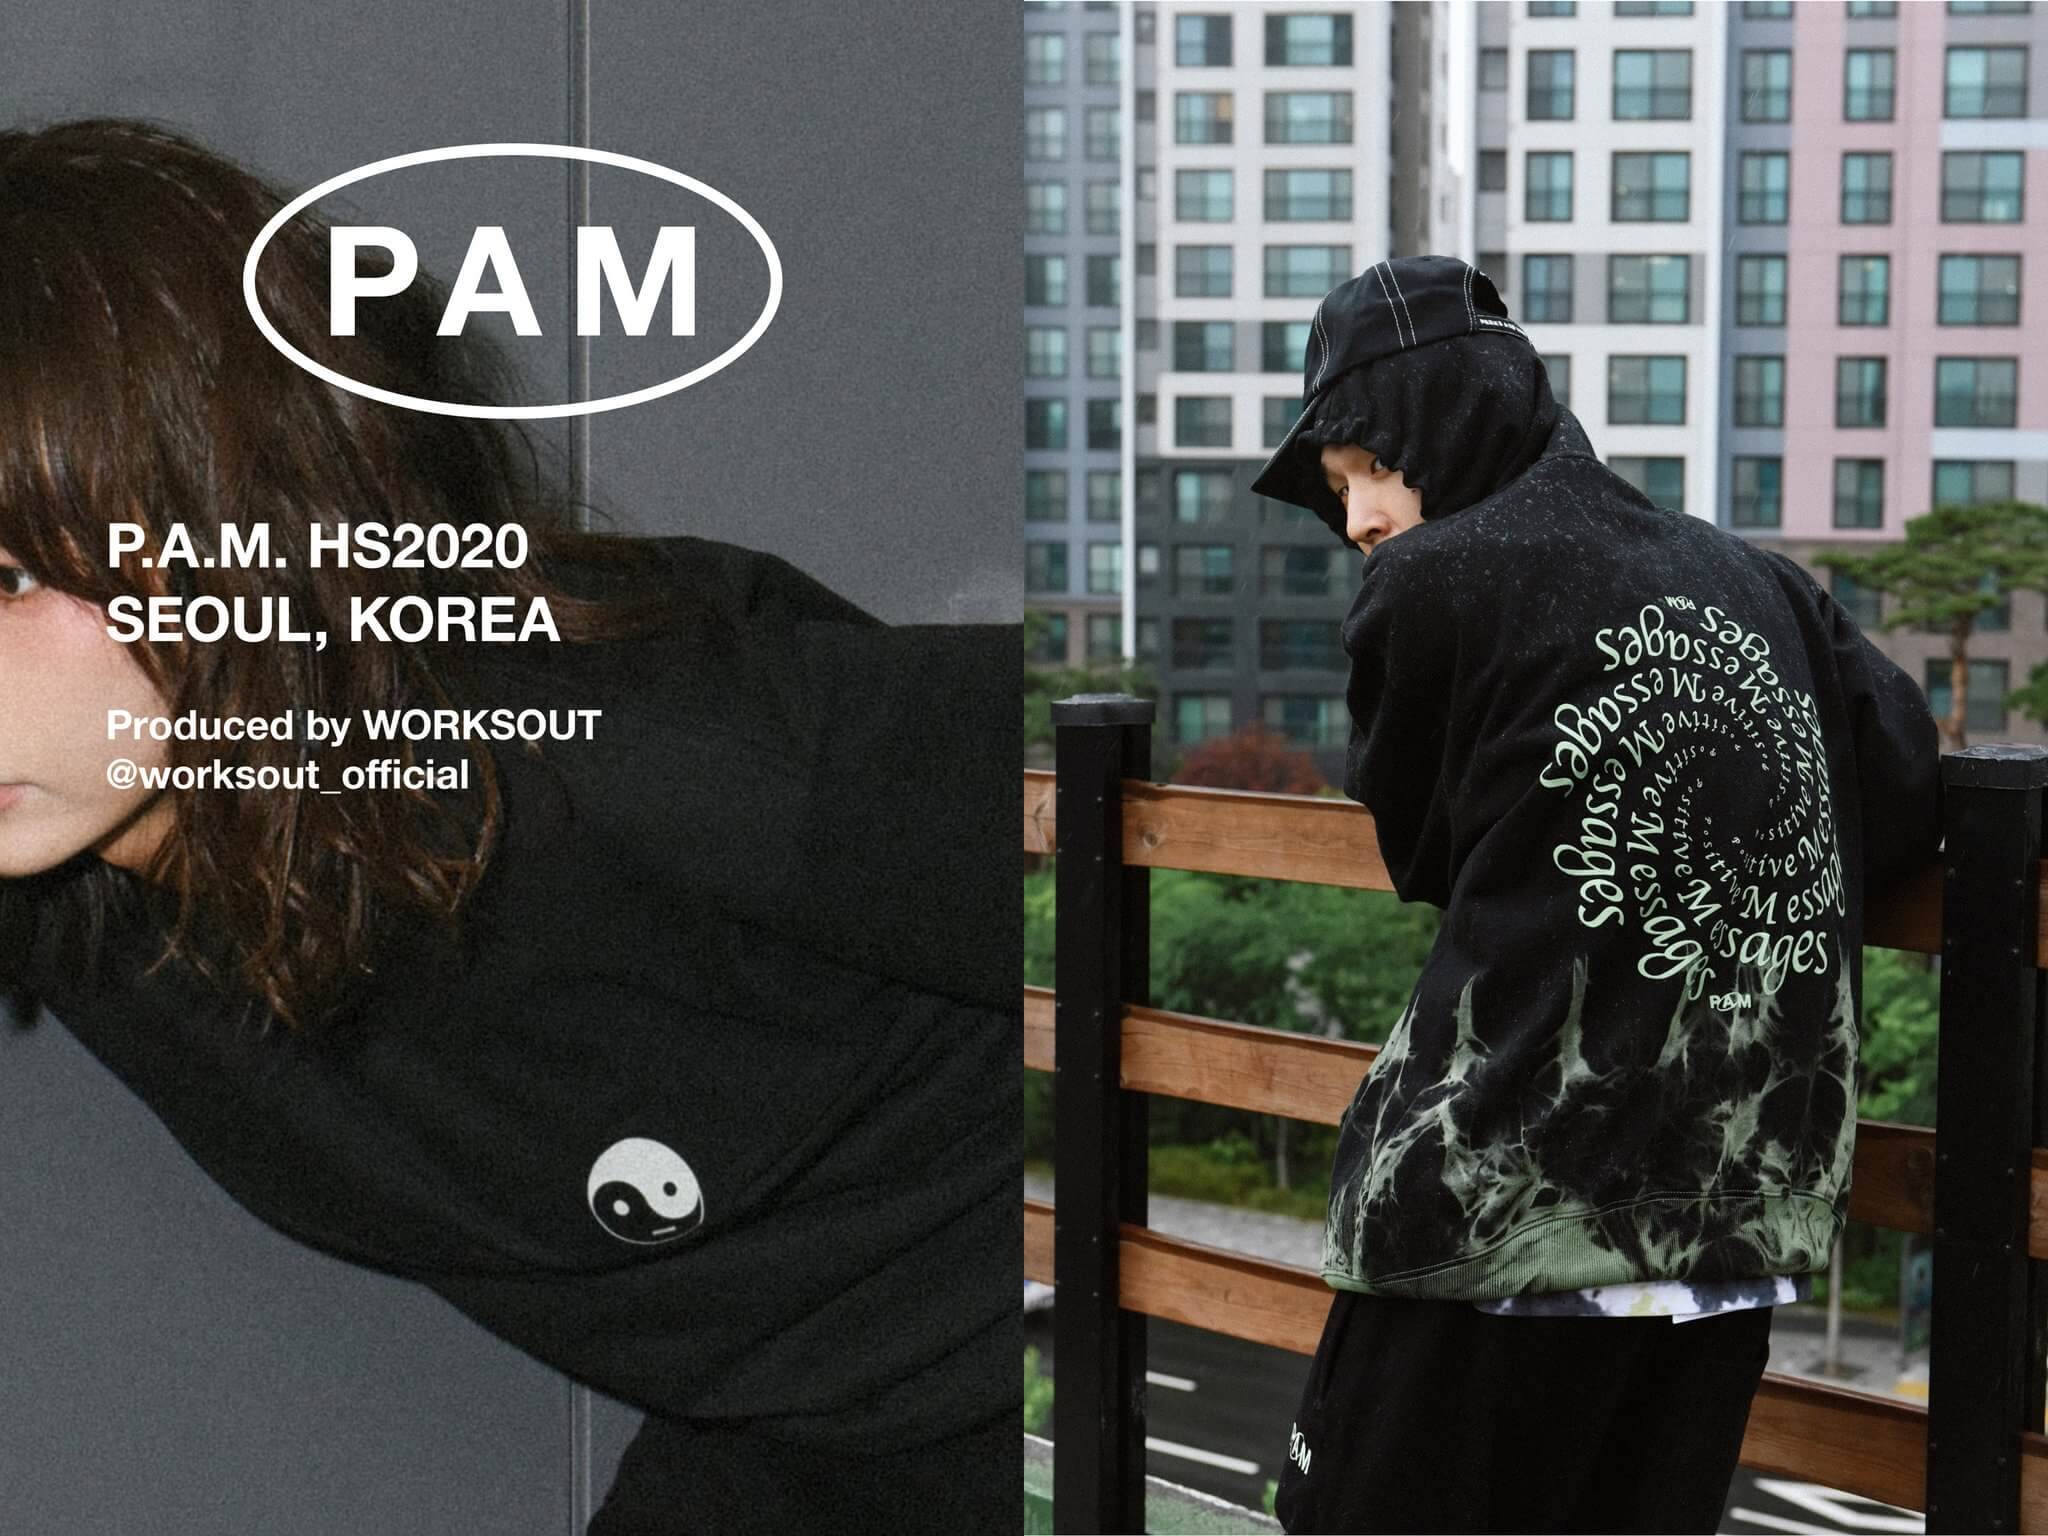 P.A.M culture and couture